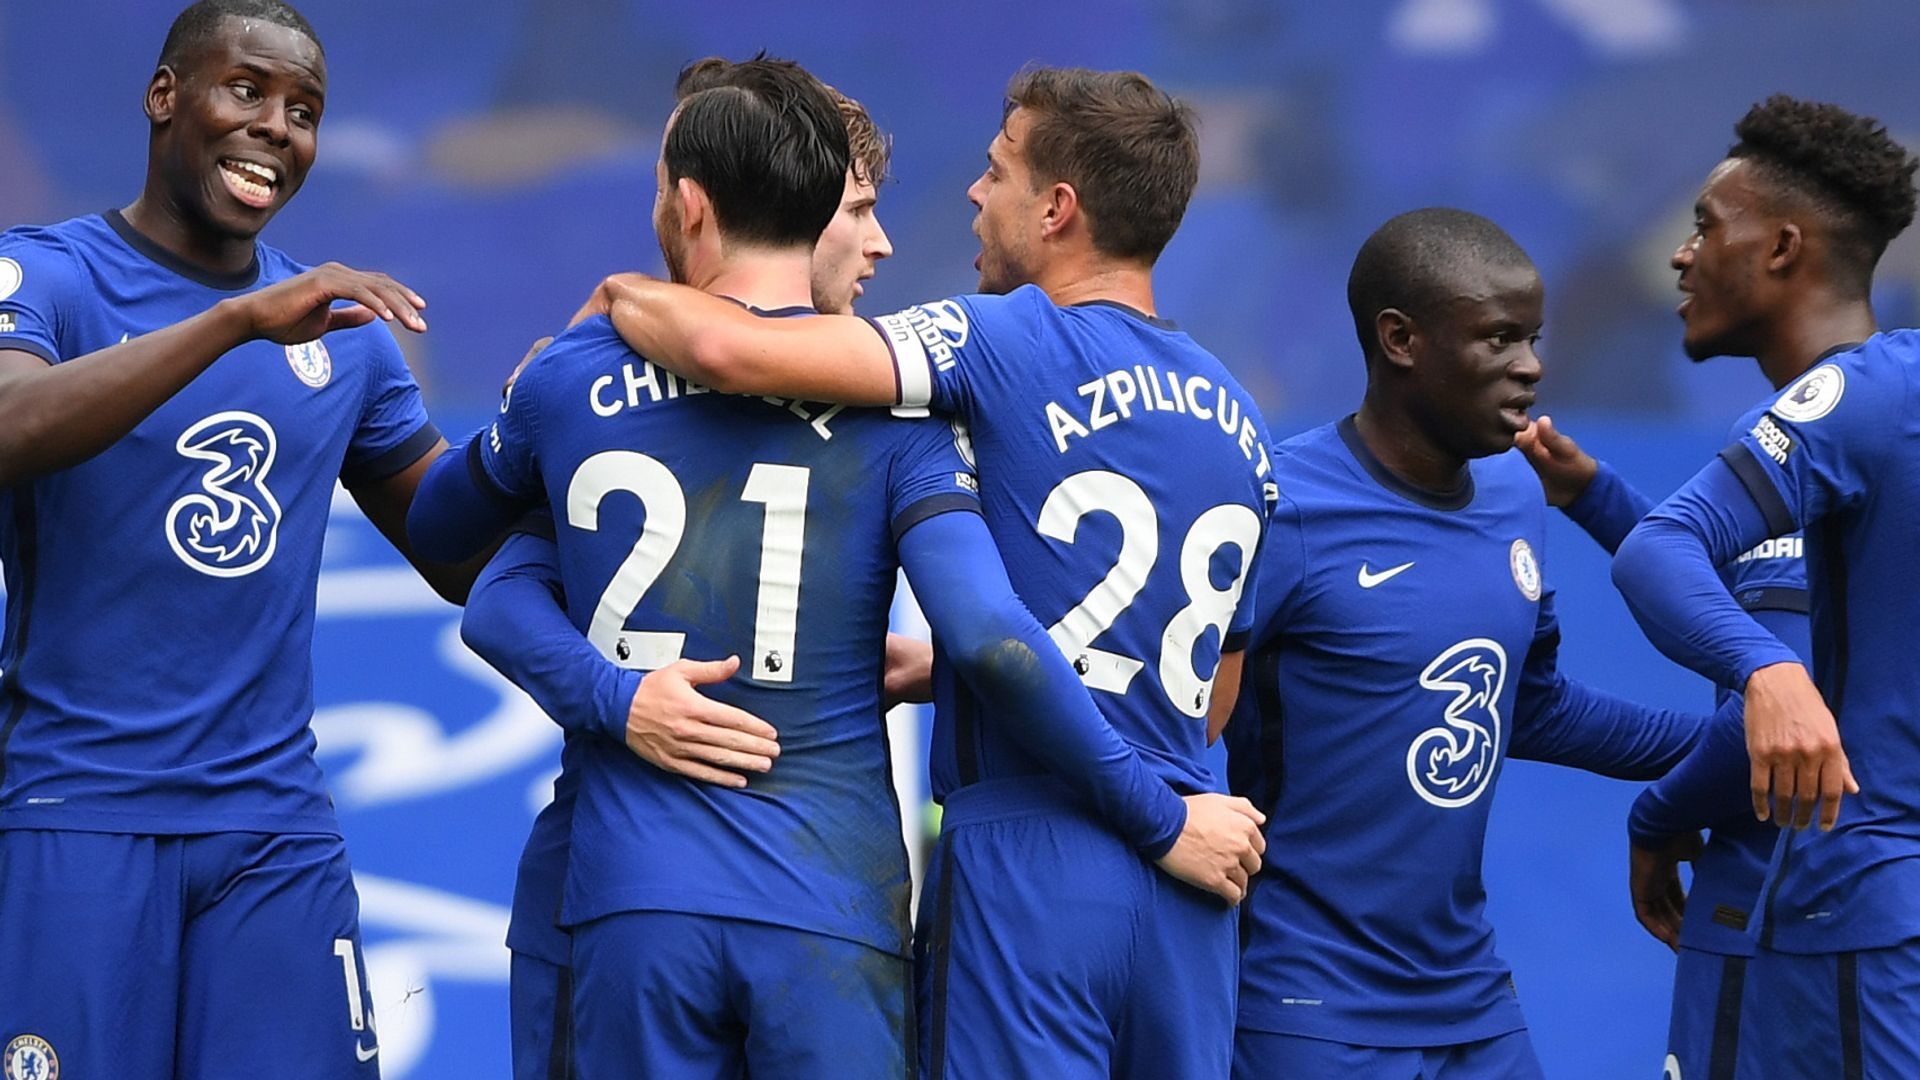 Hits and misses: Everton fly, Chelsea impress, City stumble